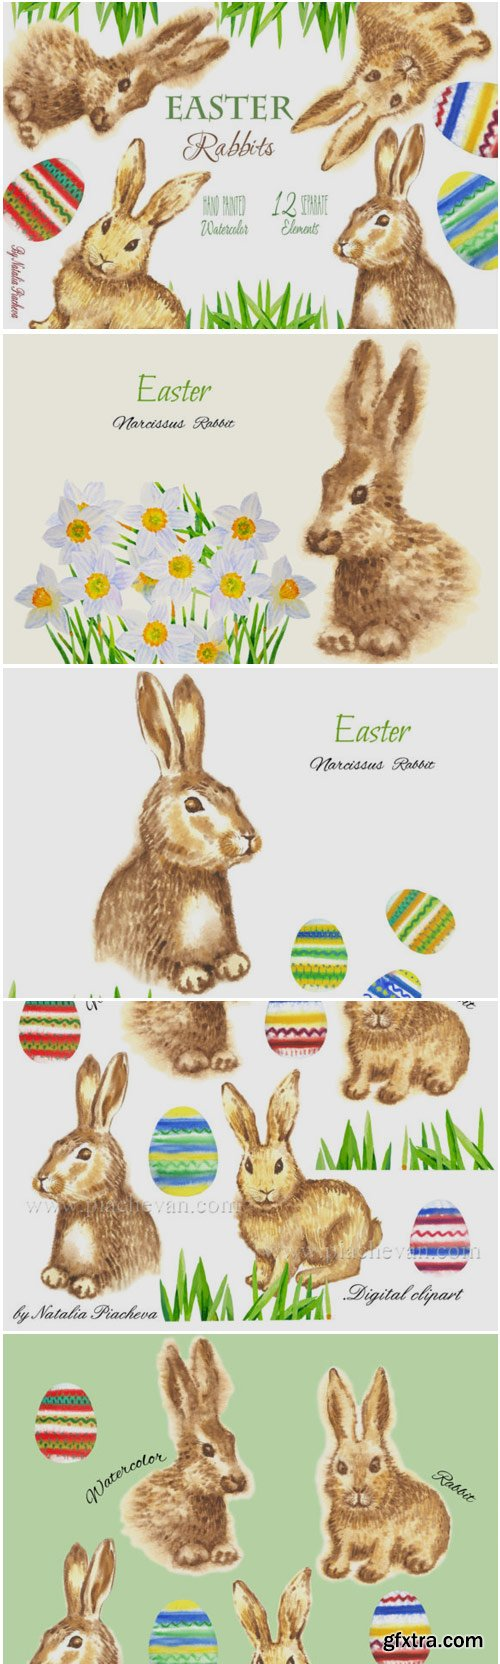 Easter Rabbits Watercolor Clipart 1412966